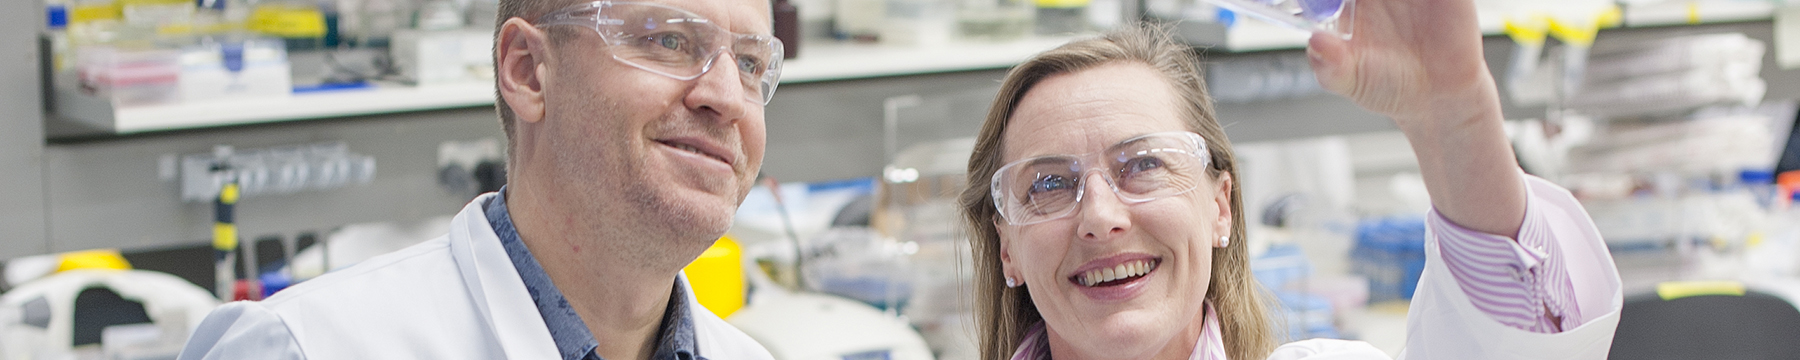 Doug Hilton and Gabrielle Belz in lab